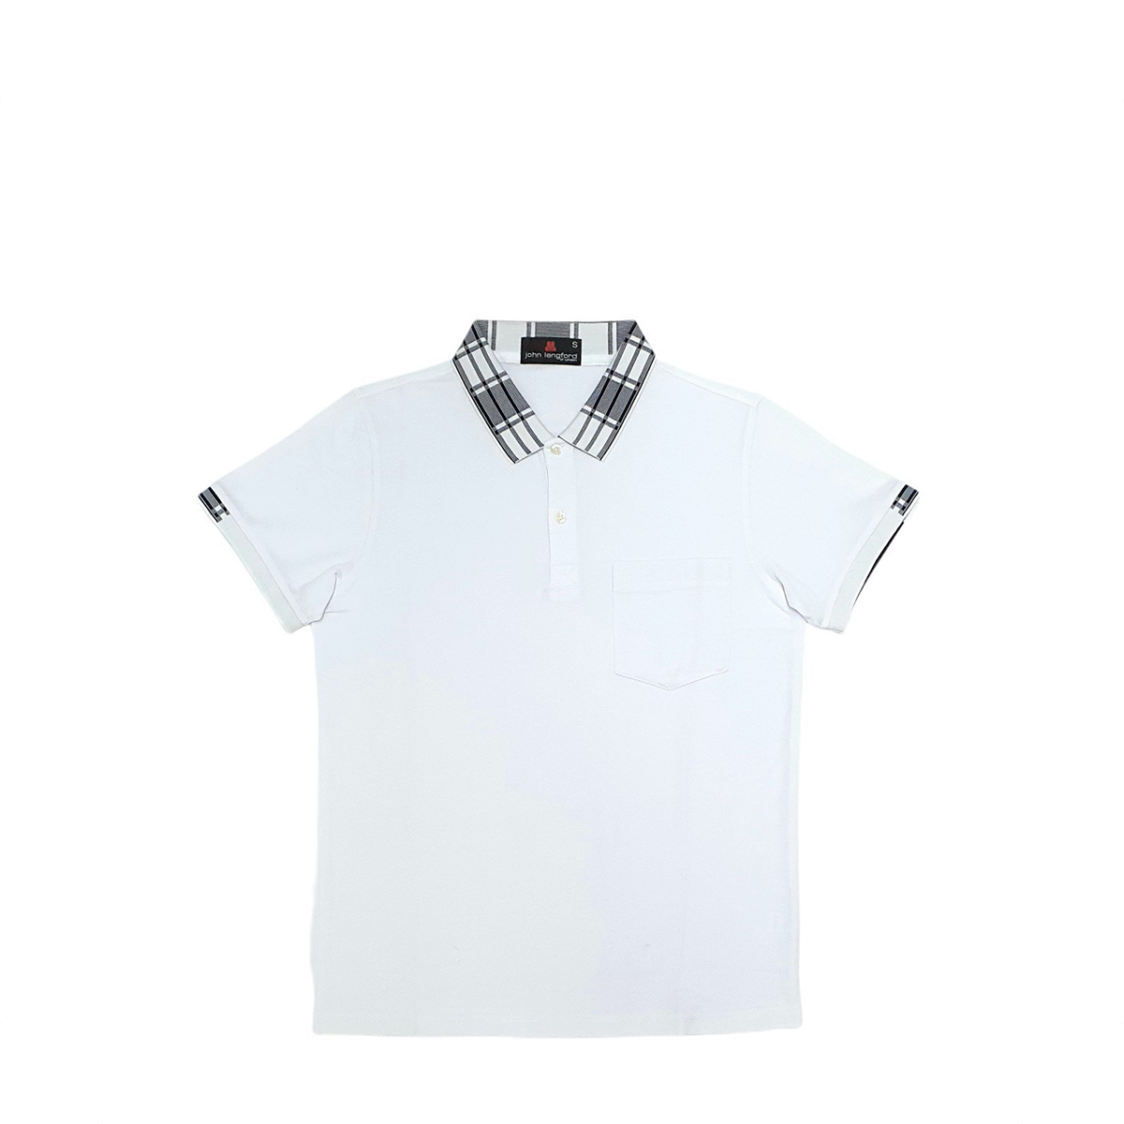 John Langford Honeycombed Polo T-Shirt with Pocket and Digital Printed Collar White